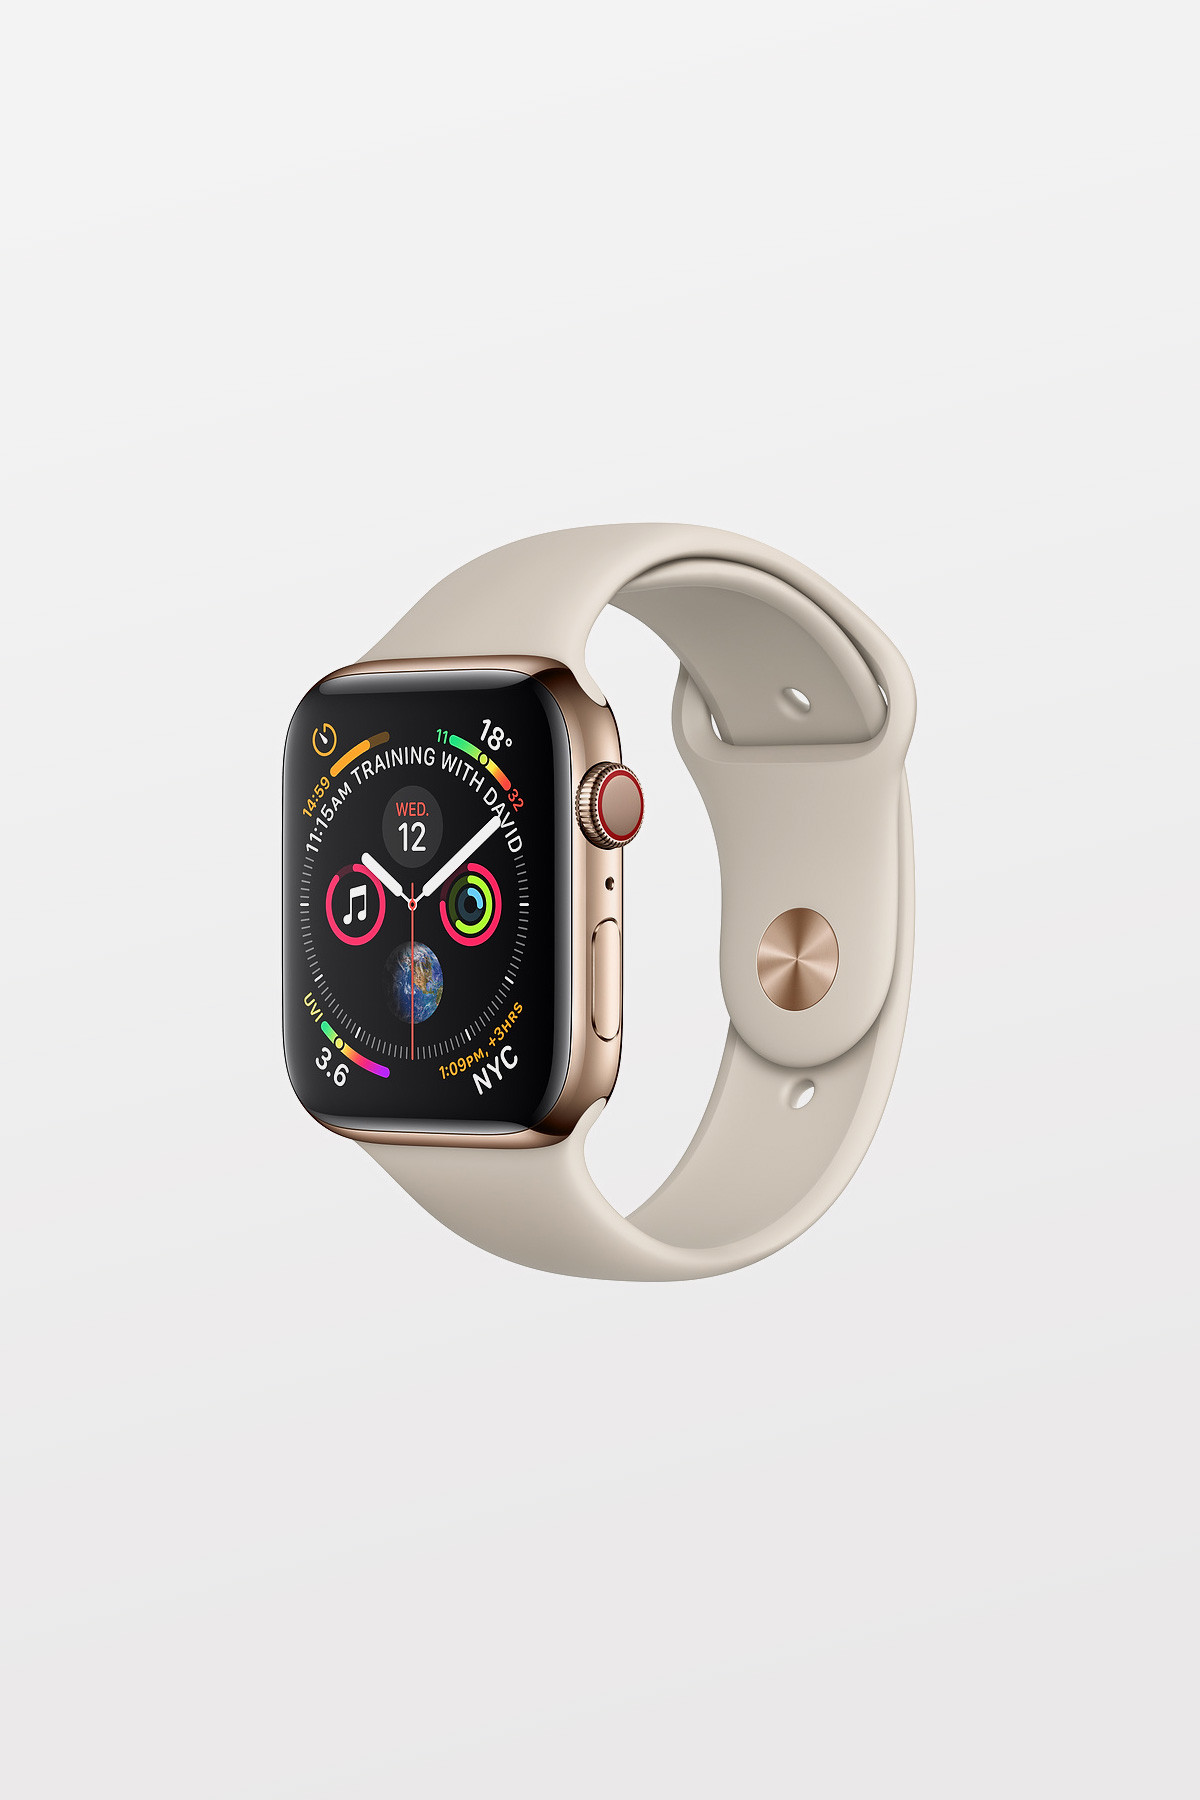 Apple Watch Series 4 Cellular - 44mm - Gold Stainless Steel Case with Stone Sport Band